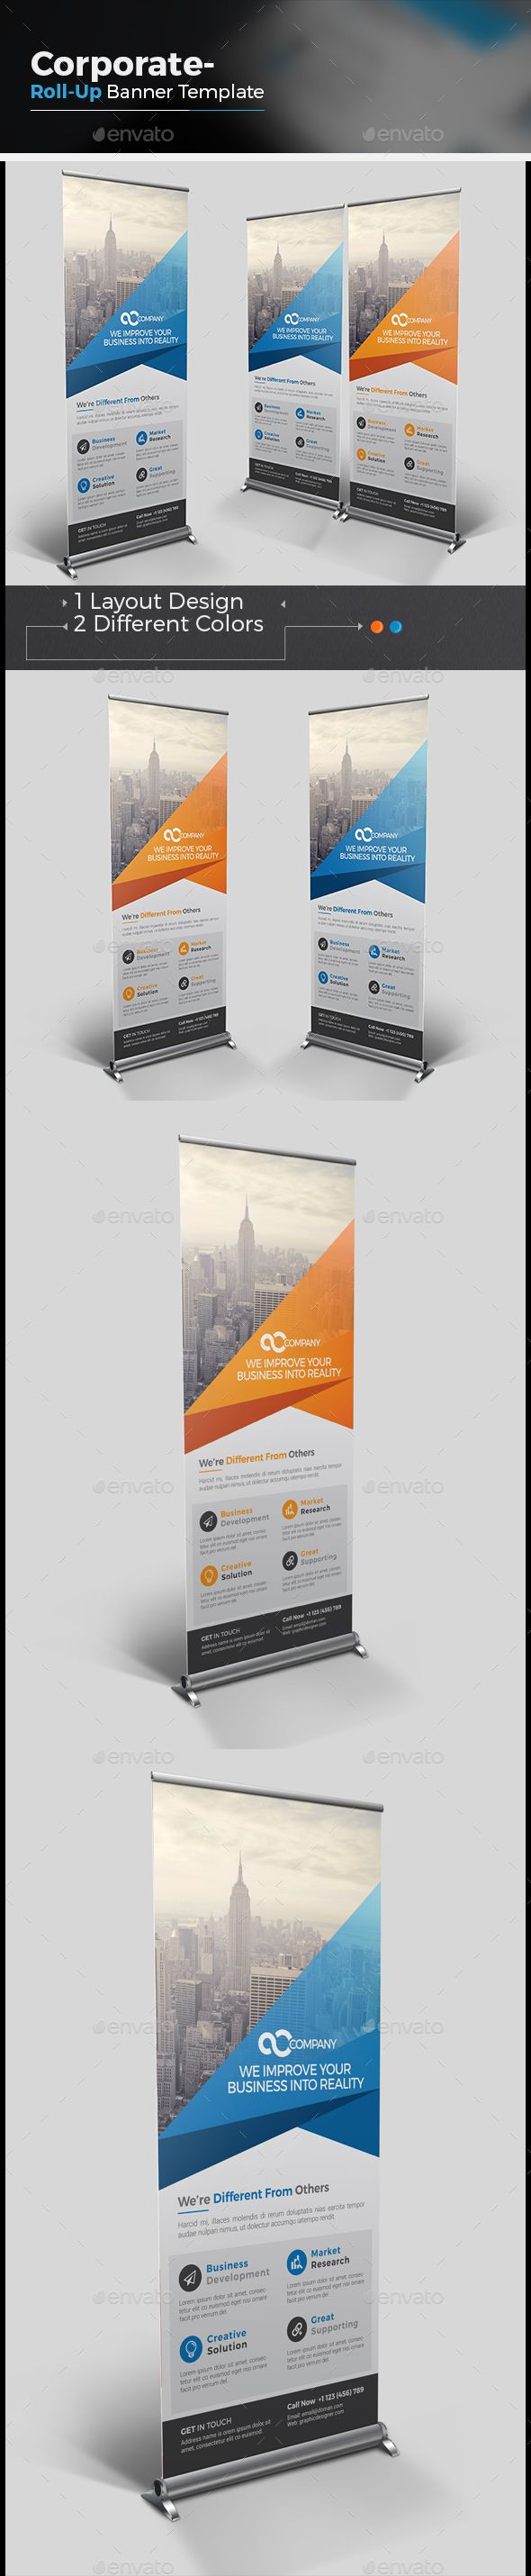 Roll-up Banner Template Vector EPS, AI #design Download: http://graphicriver.net/item/rollup-banner/14469509?ref=ksioks